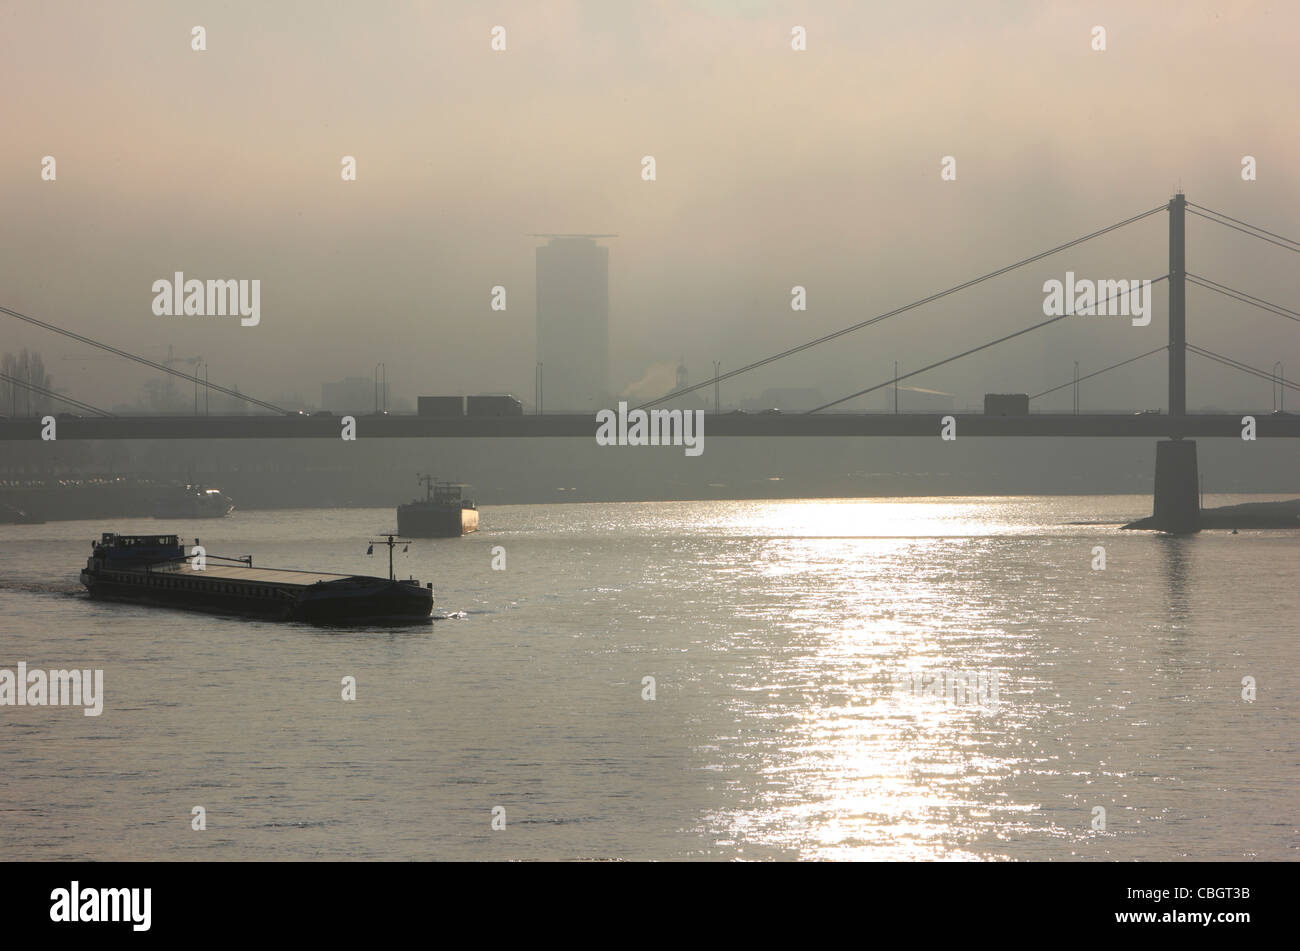 River Rhine in fall, autumn, foggy day. Freight ships passing a bridge in Düsseldorf, Germany. - Stock Image